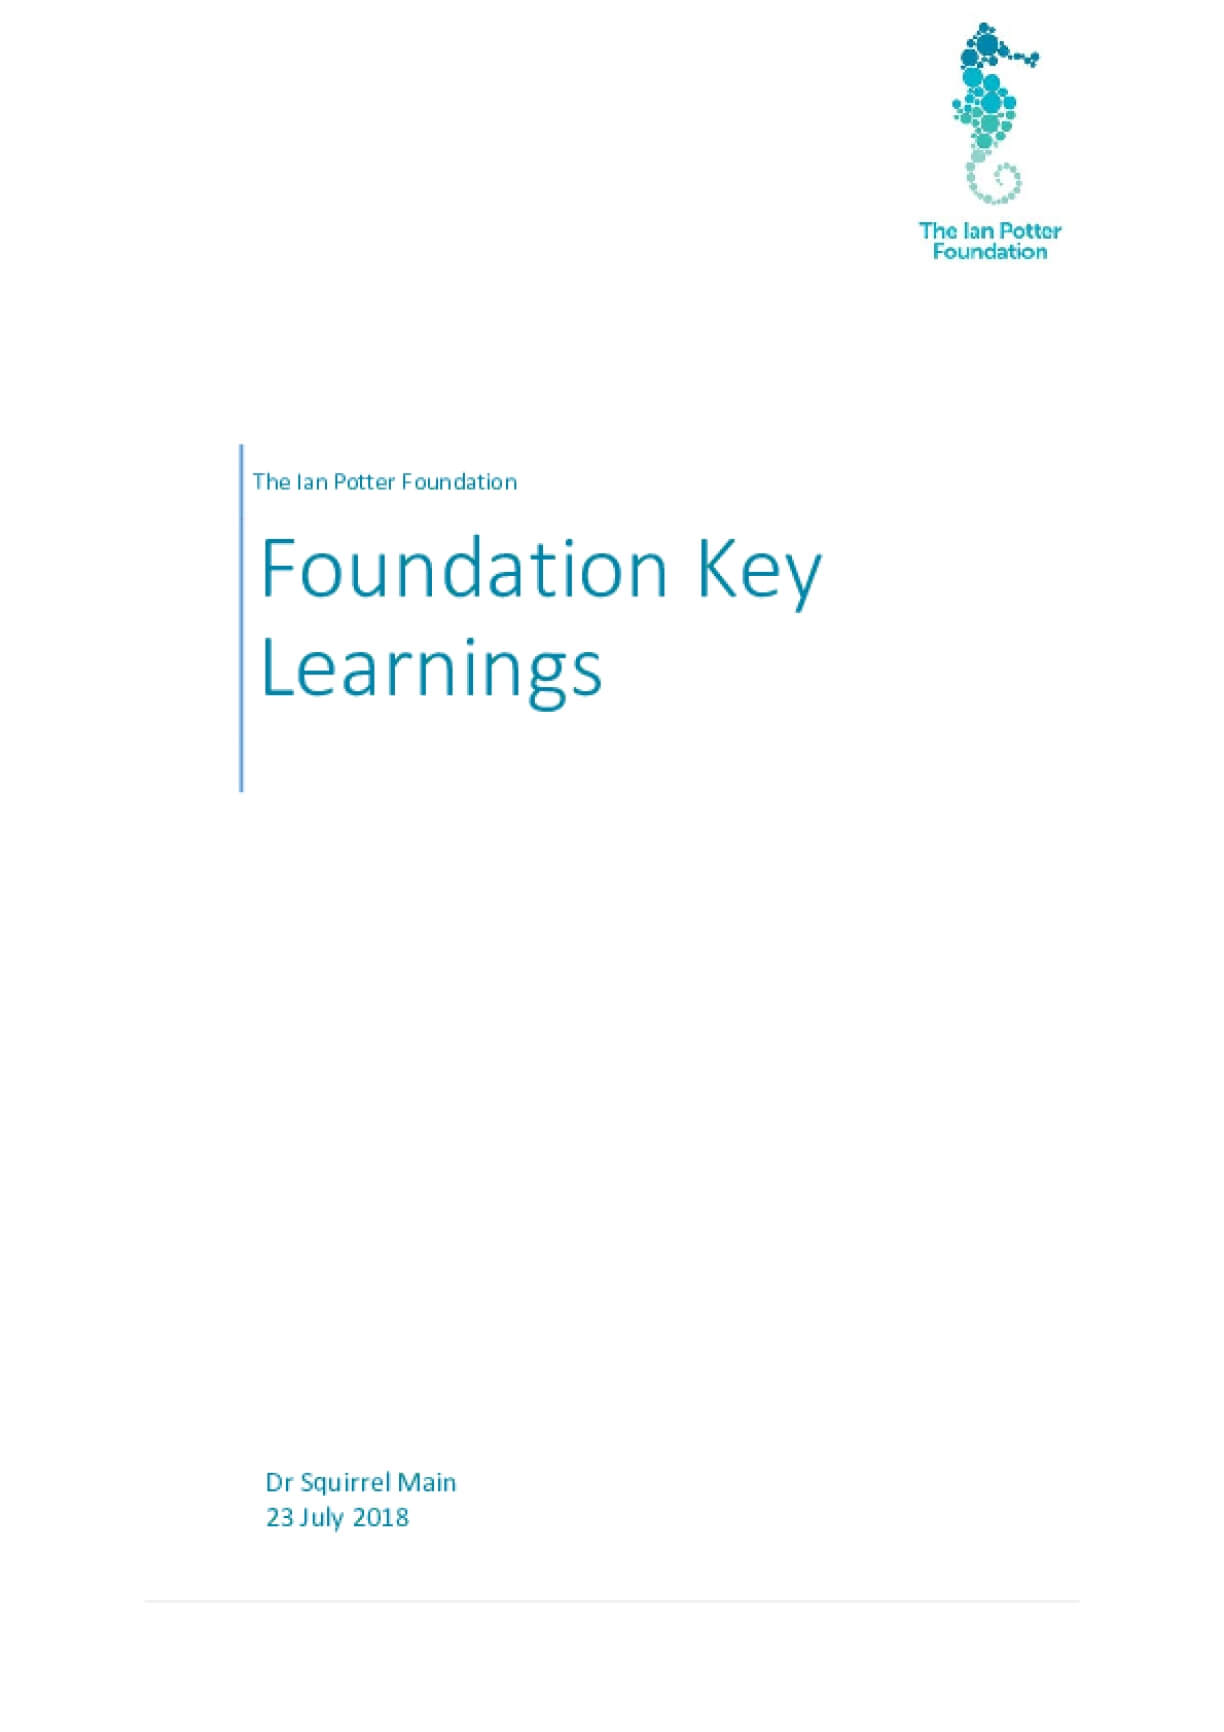 The Ian Potter Foundation - Grantmaker Learnings